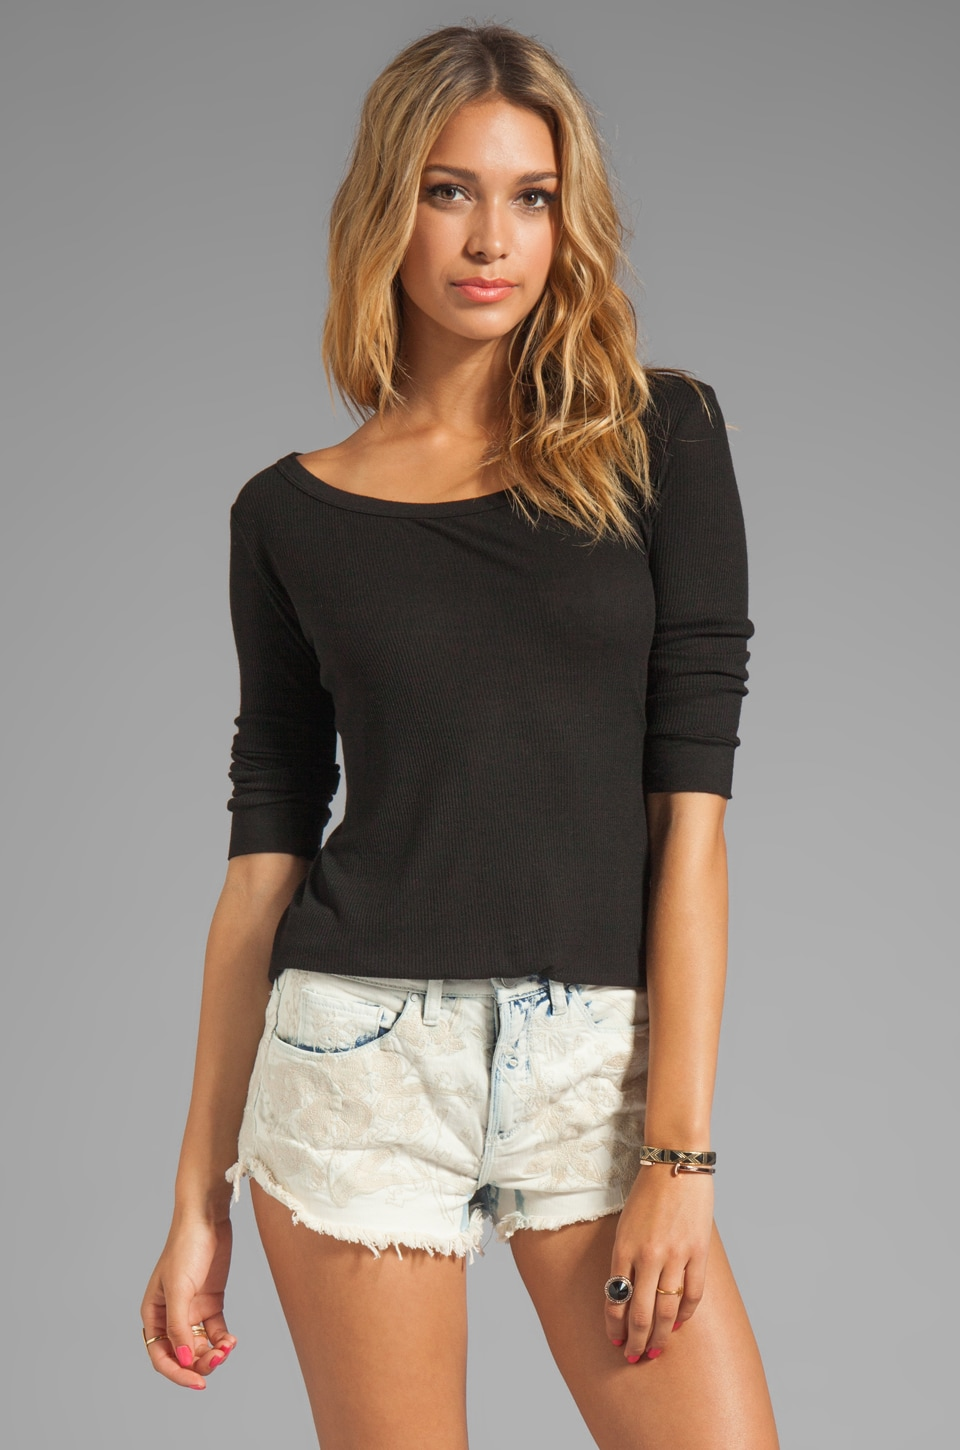 Enza Costa Silk Rib 3/4 Baseball Tee in Black